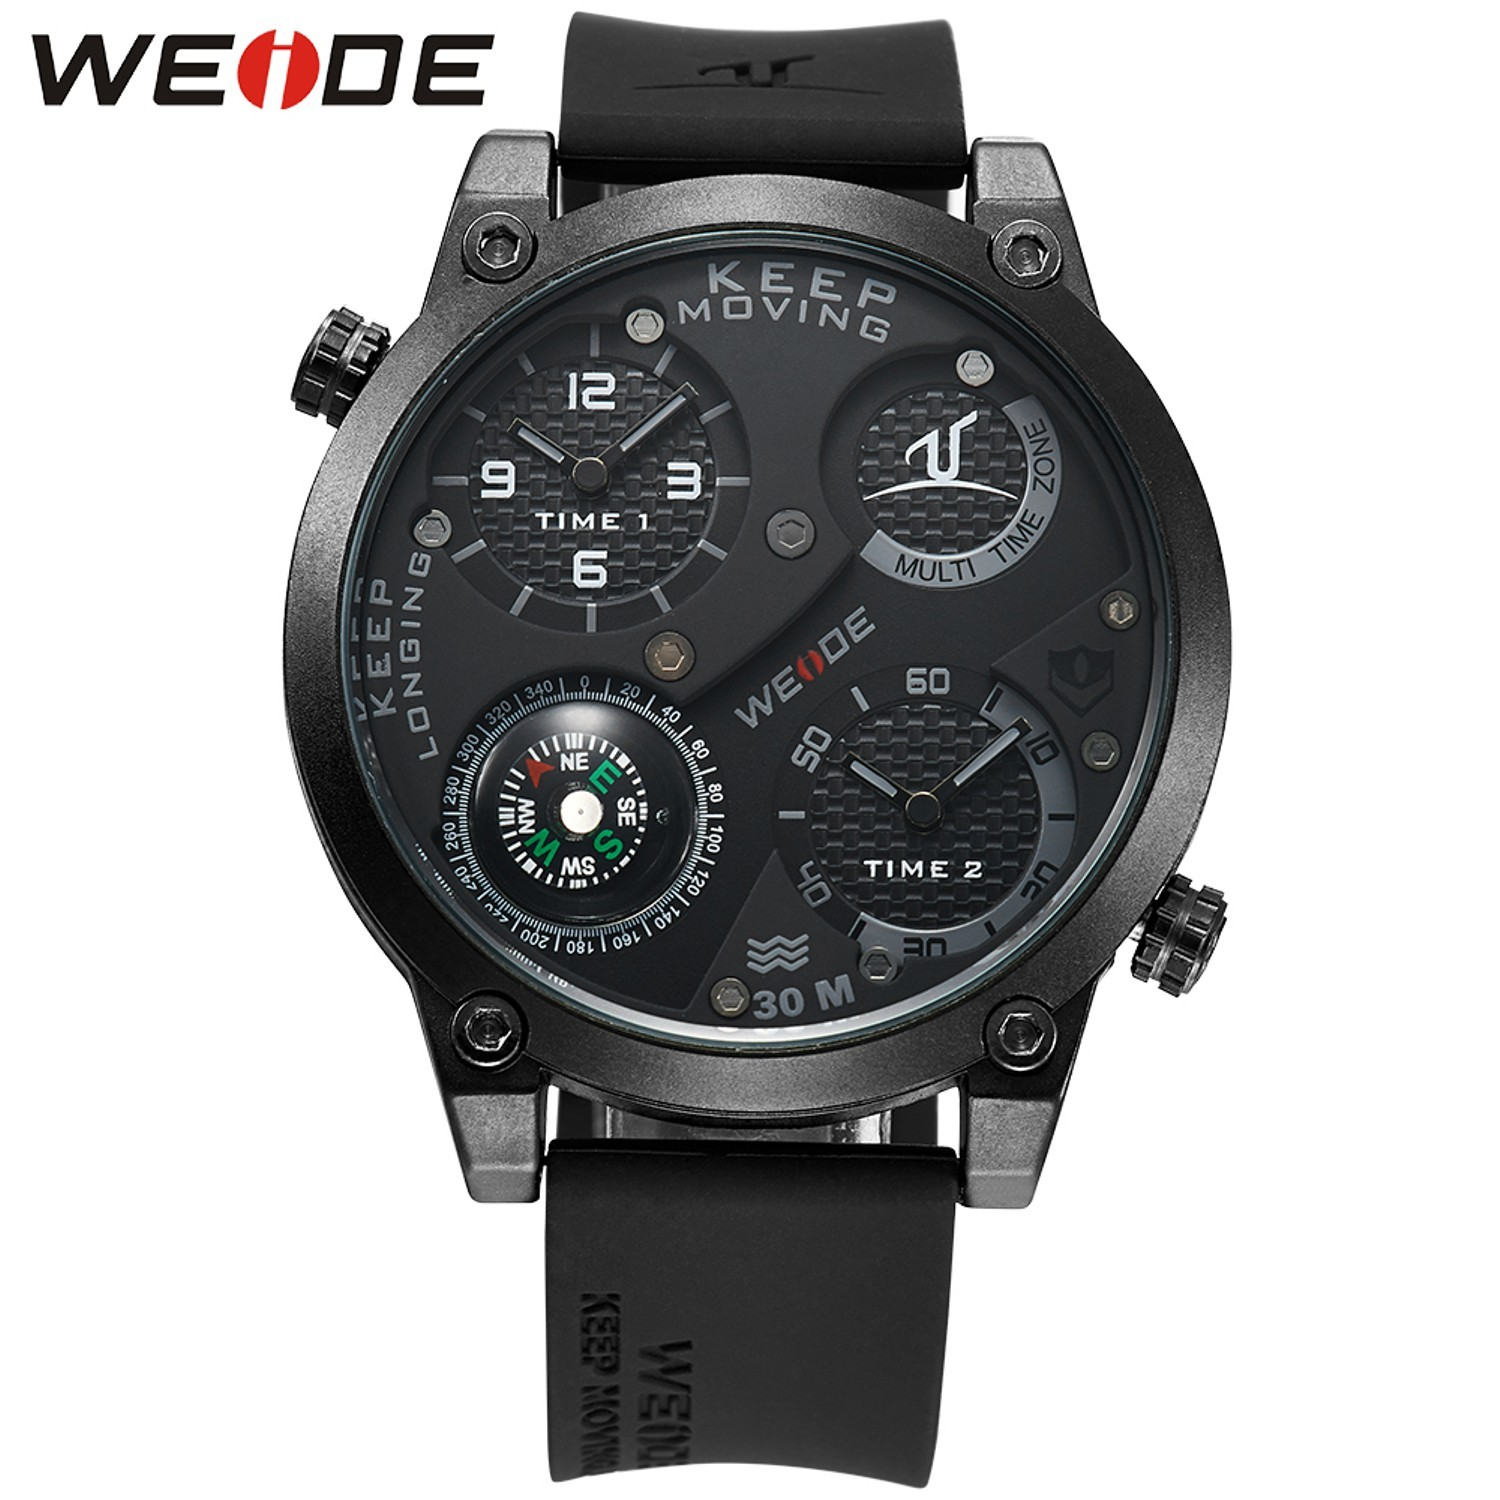 WEIDE-Sport-Watch-Luxury-Brand-Quartz-Analog-Black-Dial-Silicone-Band-Military-Waterproof-Compass-Relogio-Gift_1500x1500_STRETCH_271.jpg